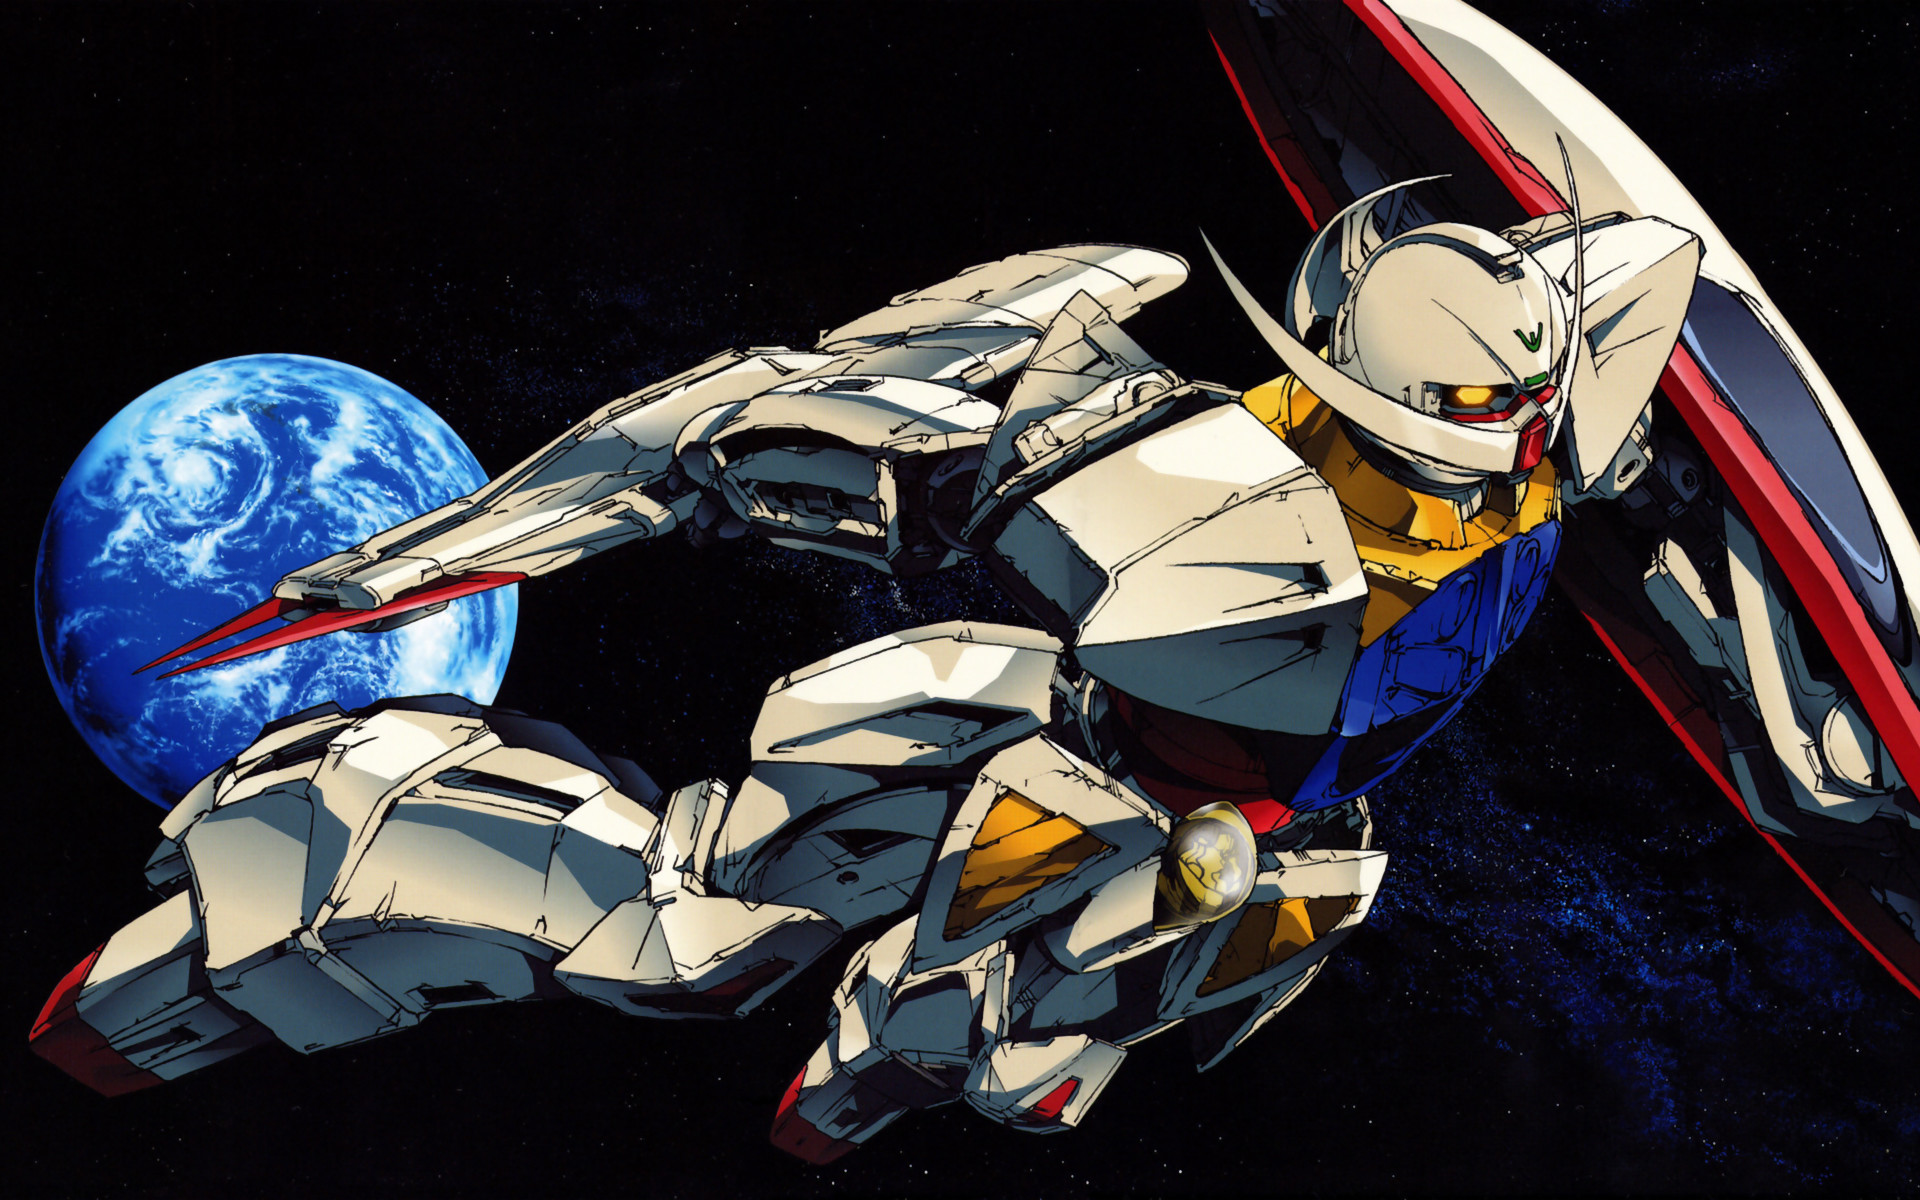 1920x1200 Puru images gundam HD wallpaper and background photos